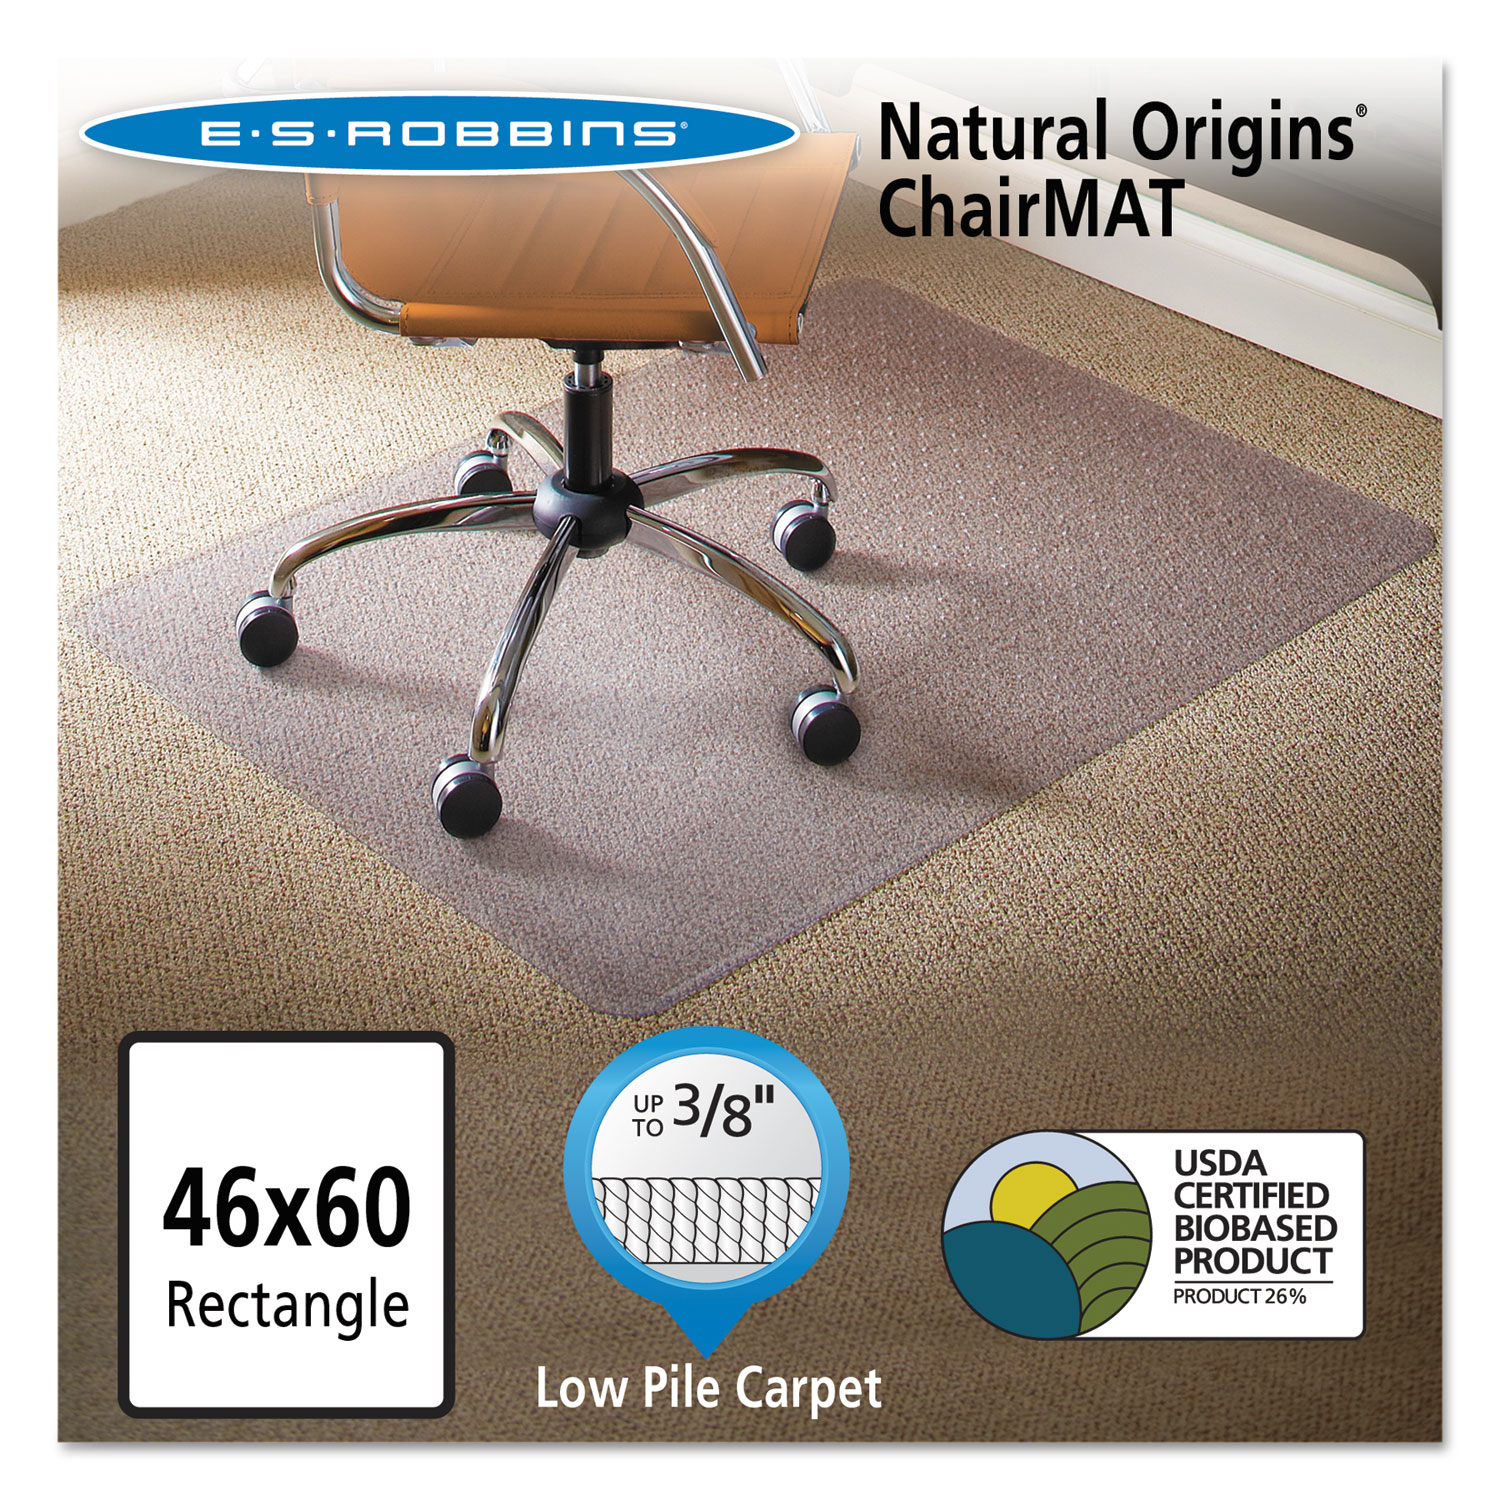 natural origins chair mat for carpet by es robbinsa esr141052